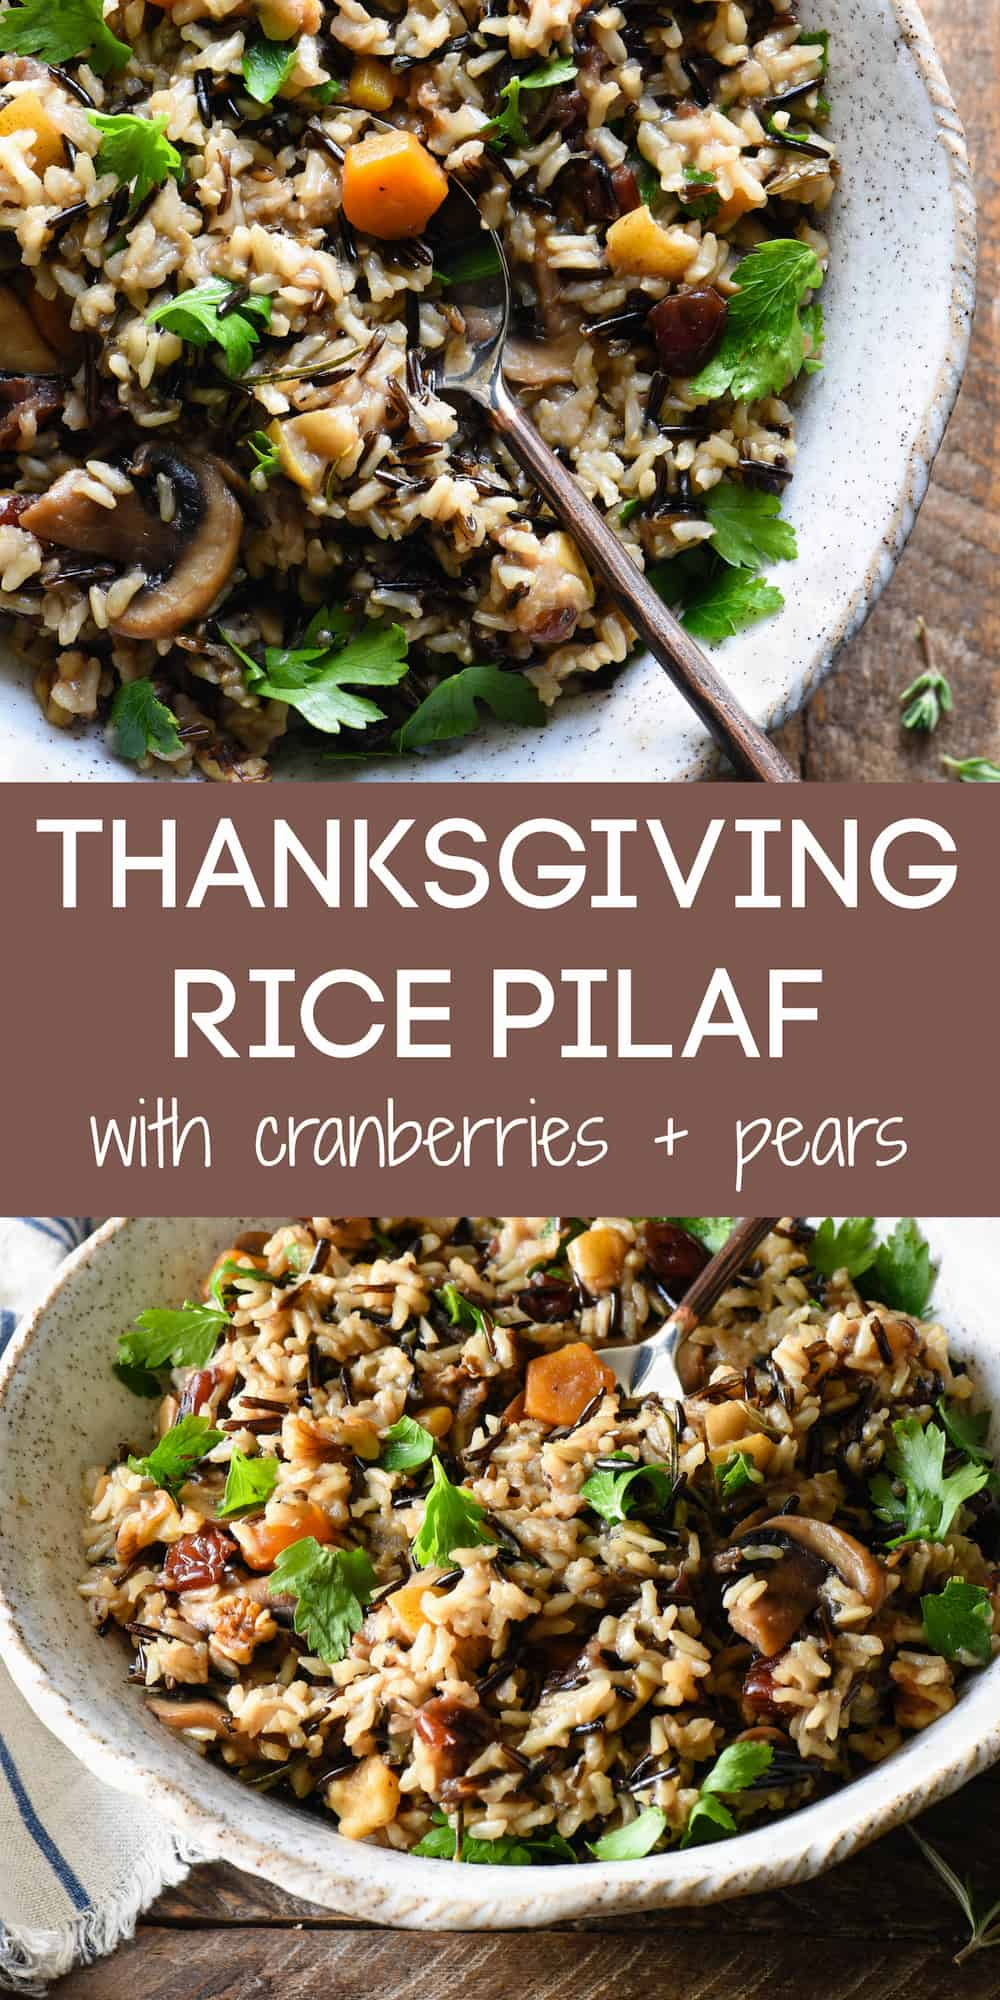 Collage of images of wild rice dish with fruit and nuts with overlay: THANKSGIVING RICE PILAF with cranberries + pears